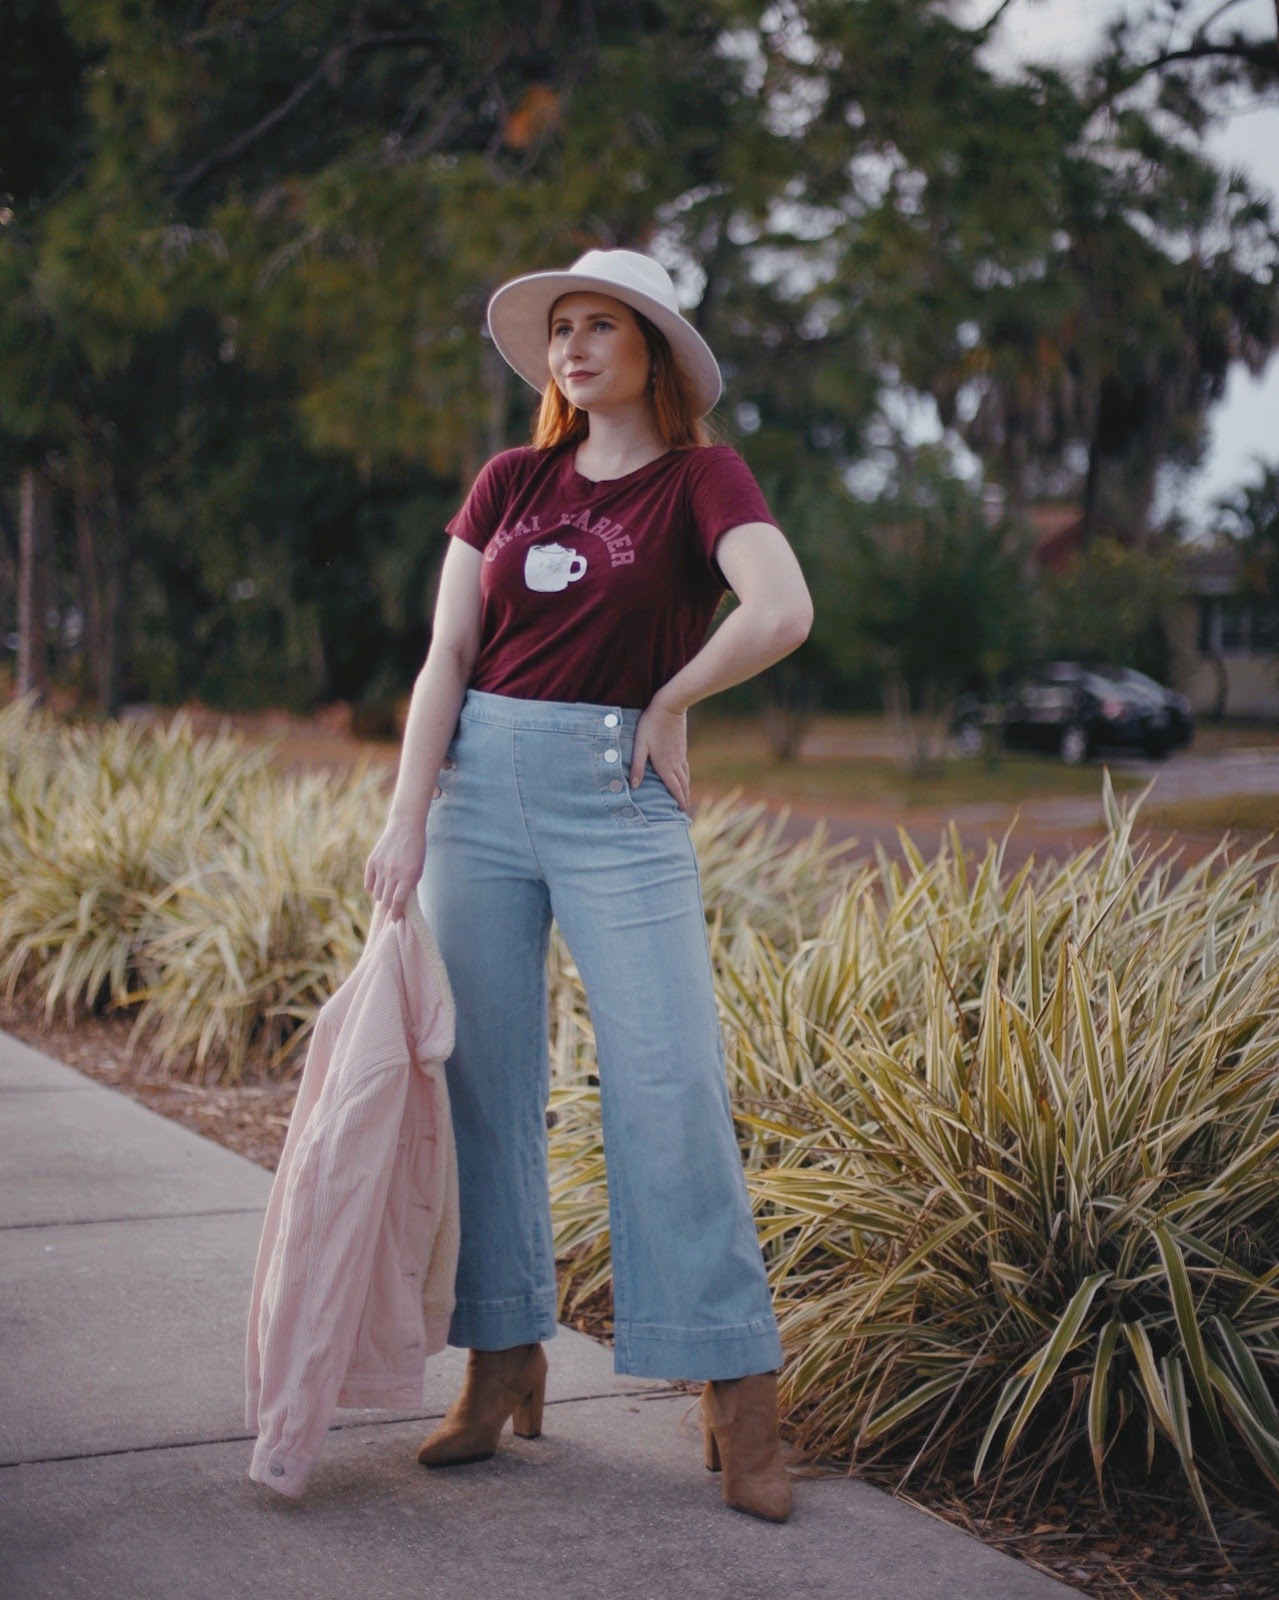 Best Boots for Fall 2019 Under $50. Tampa Style Blogger, Amanda Burrows, shares the best boots for Fall 2019. All of her best boots for fall are under $50.00 from Target. She is wearing a pair of wide-leg cropped denim jeans from LOFT, a graphic tee from Old Navy, and a pink sherpa-lined trucker jacket from Old Navy. Her suede brown sock boots are from Target.